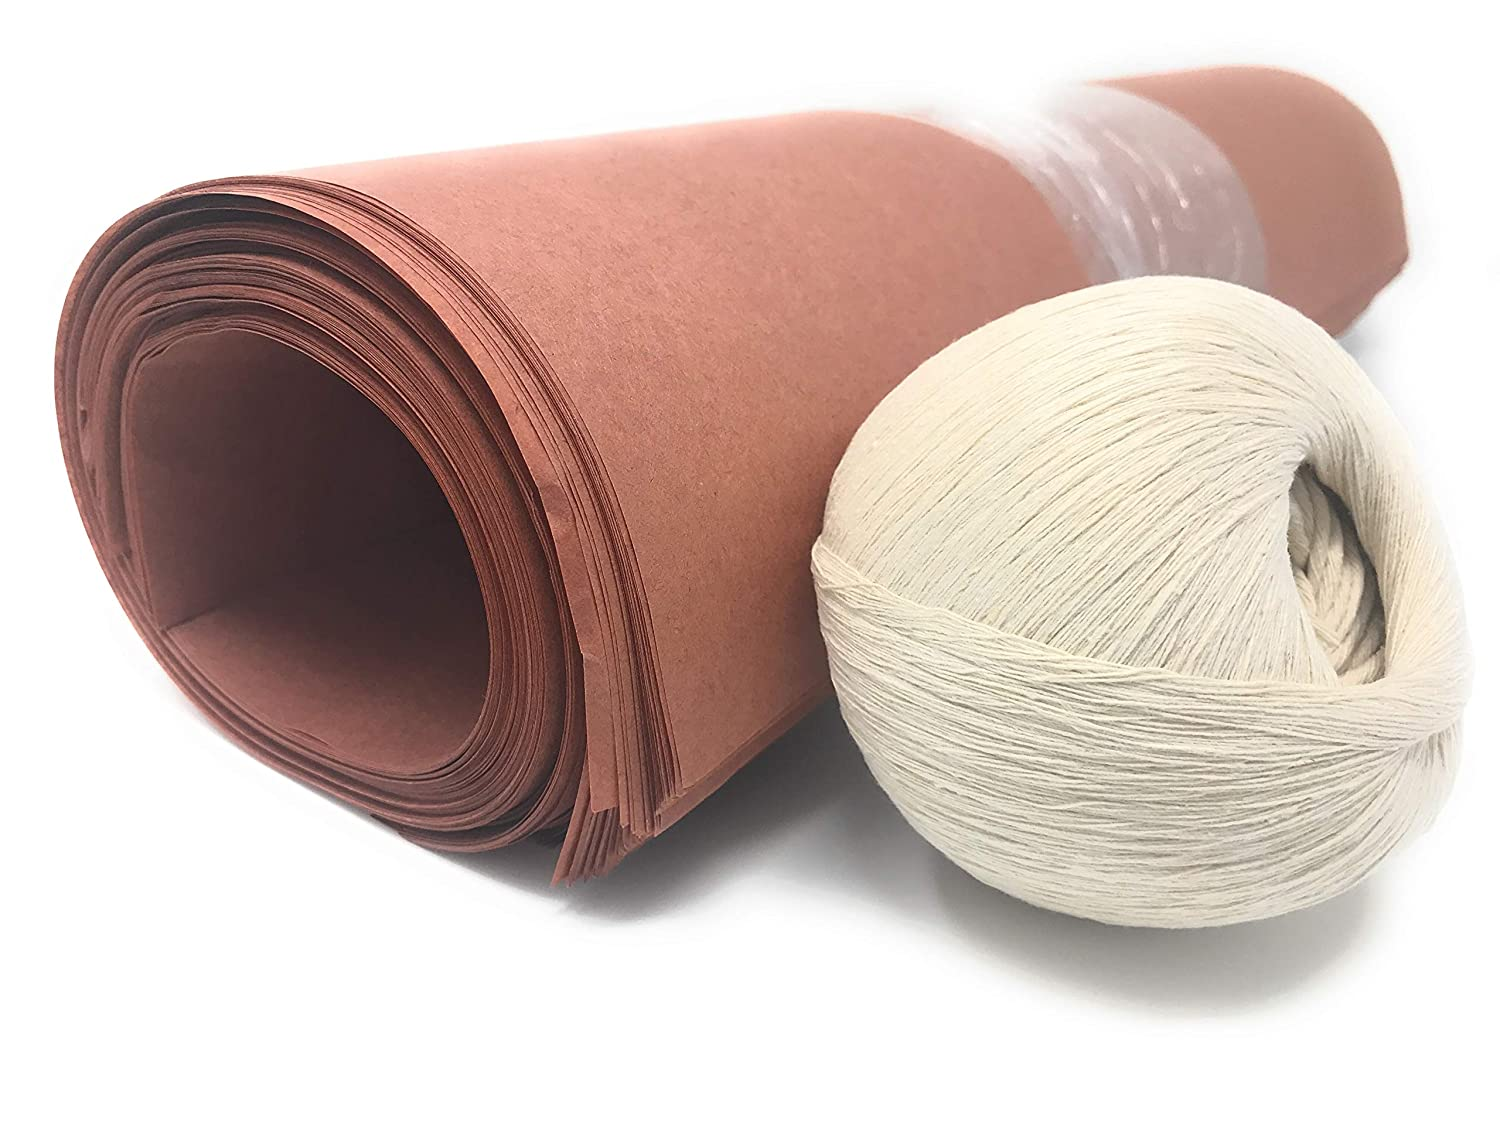 Peach Butcher Paper Sheets - 18 x 24, Best for Smoking Meat - 100 Sheets Plus Bonus Roll of Butcher Twine